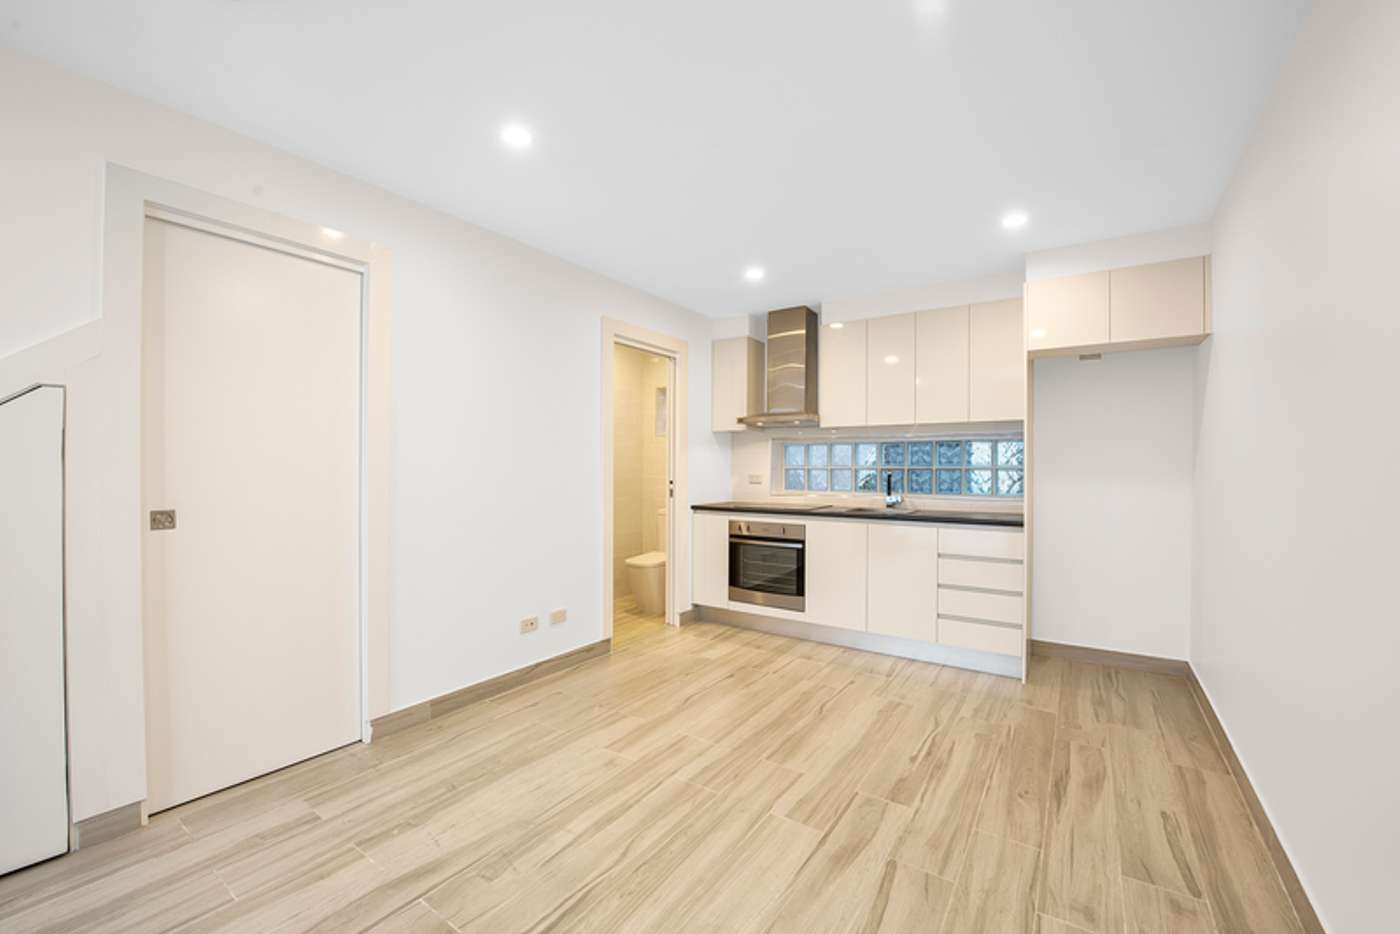 Main view of Homely apartment listing, 30a St John Street, Glebe NSW 2037